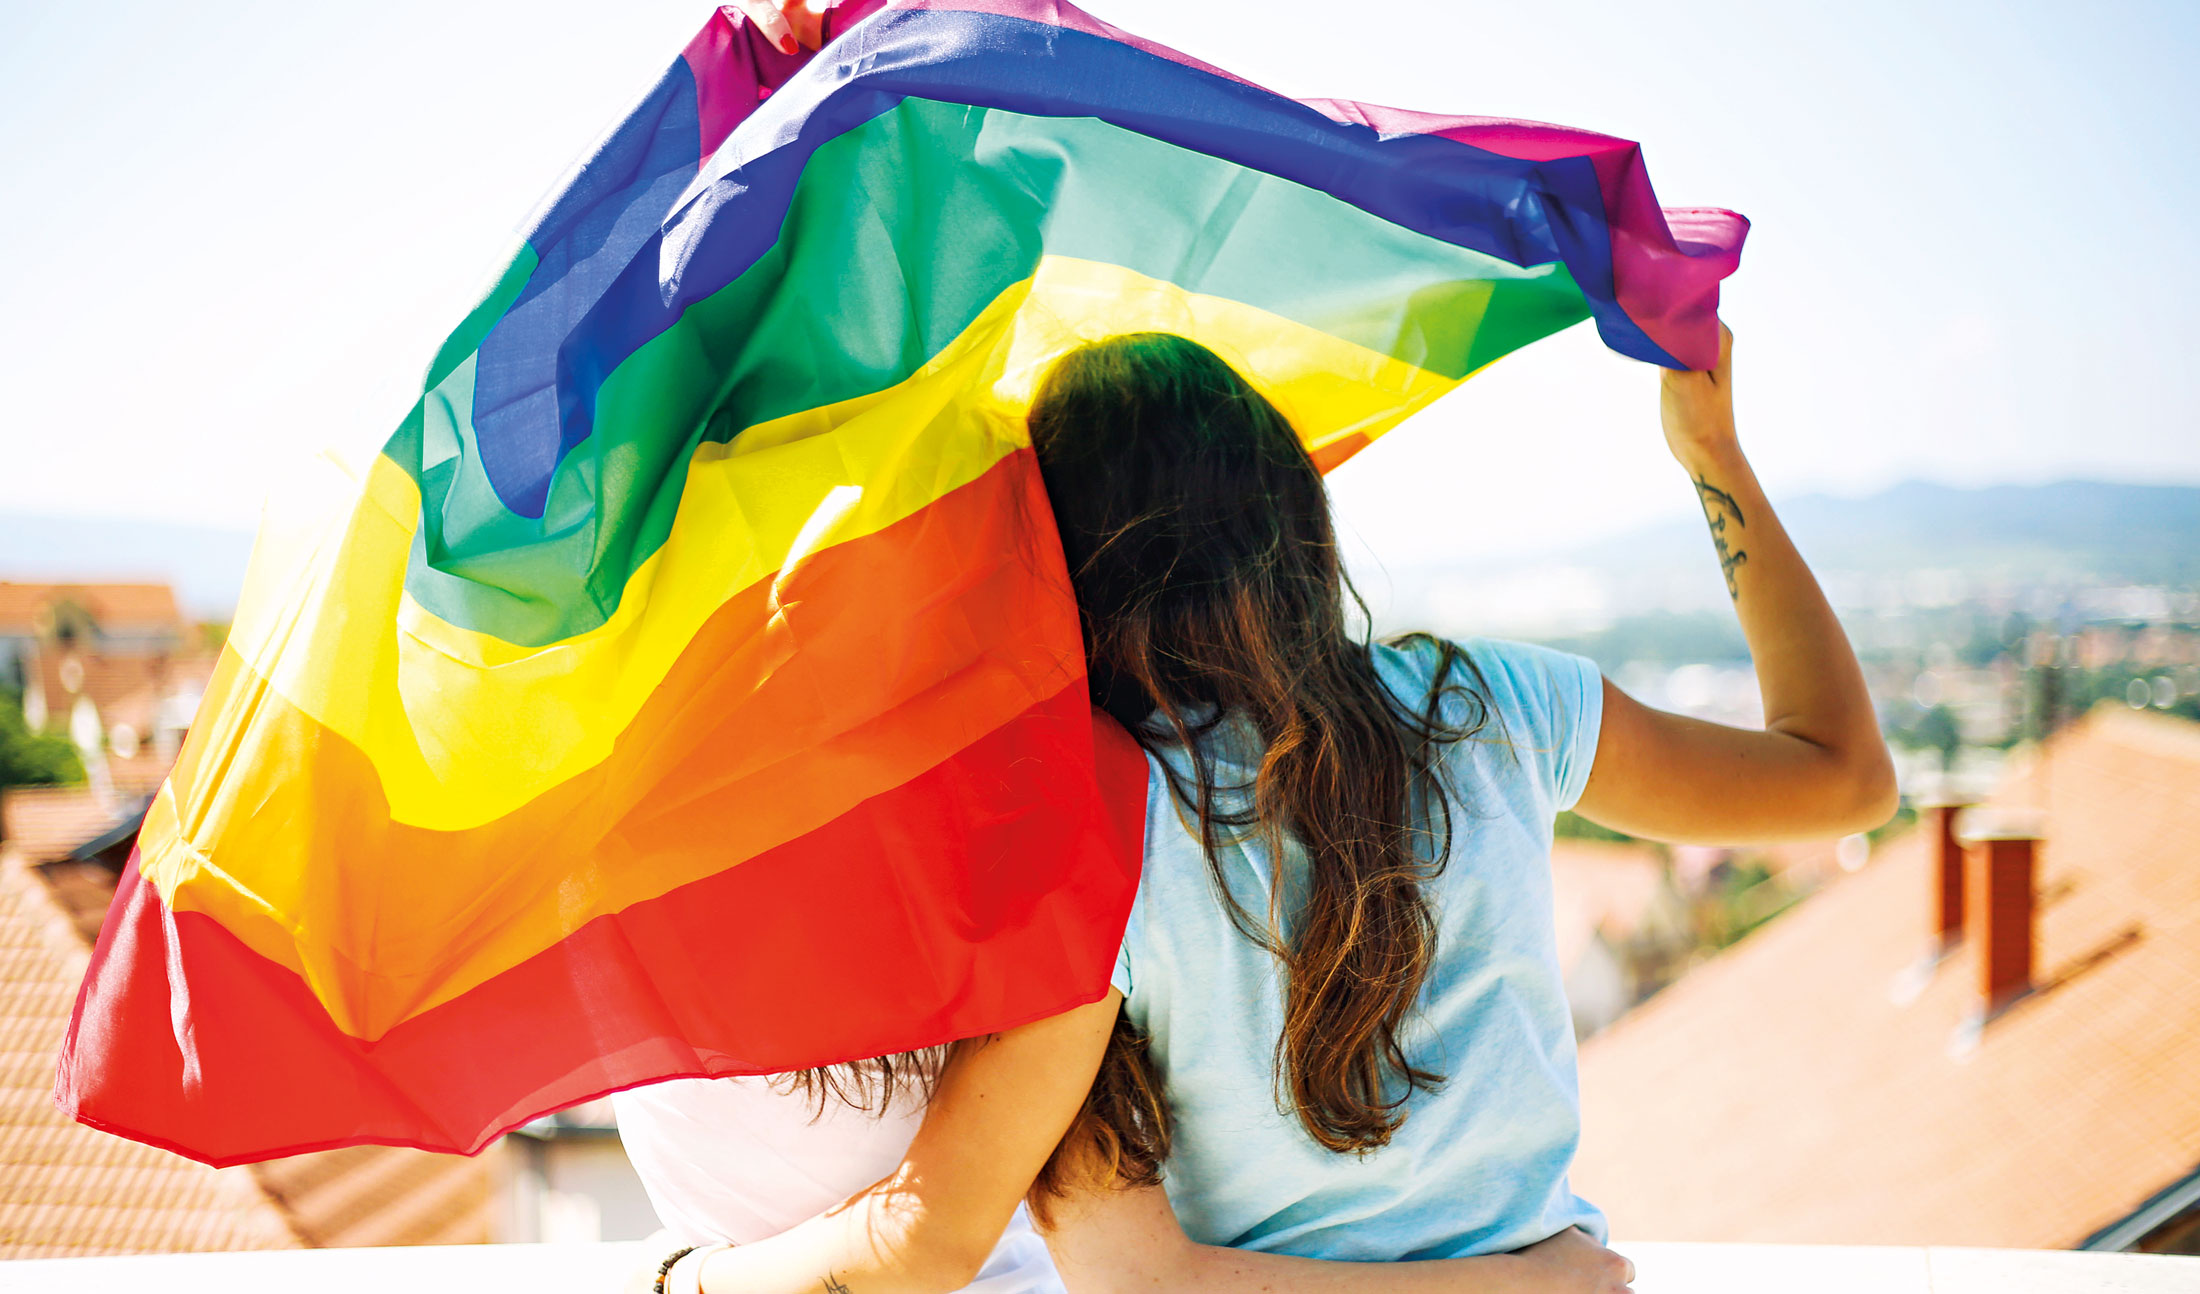 LGBTQ individuals are increasingly being met with acceptance across the globe, making being 'out' easier – and safer – than ever before